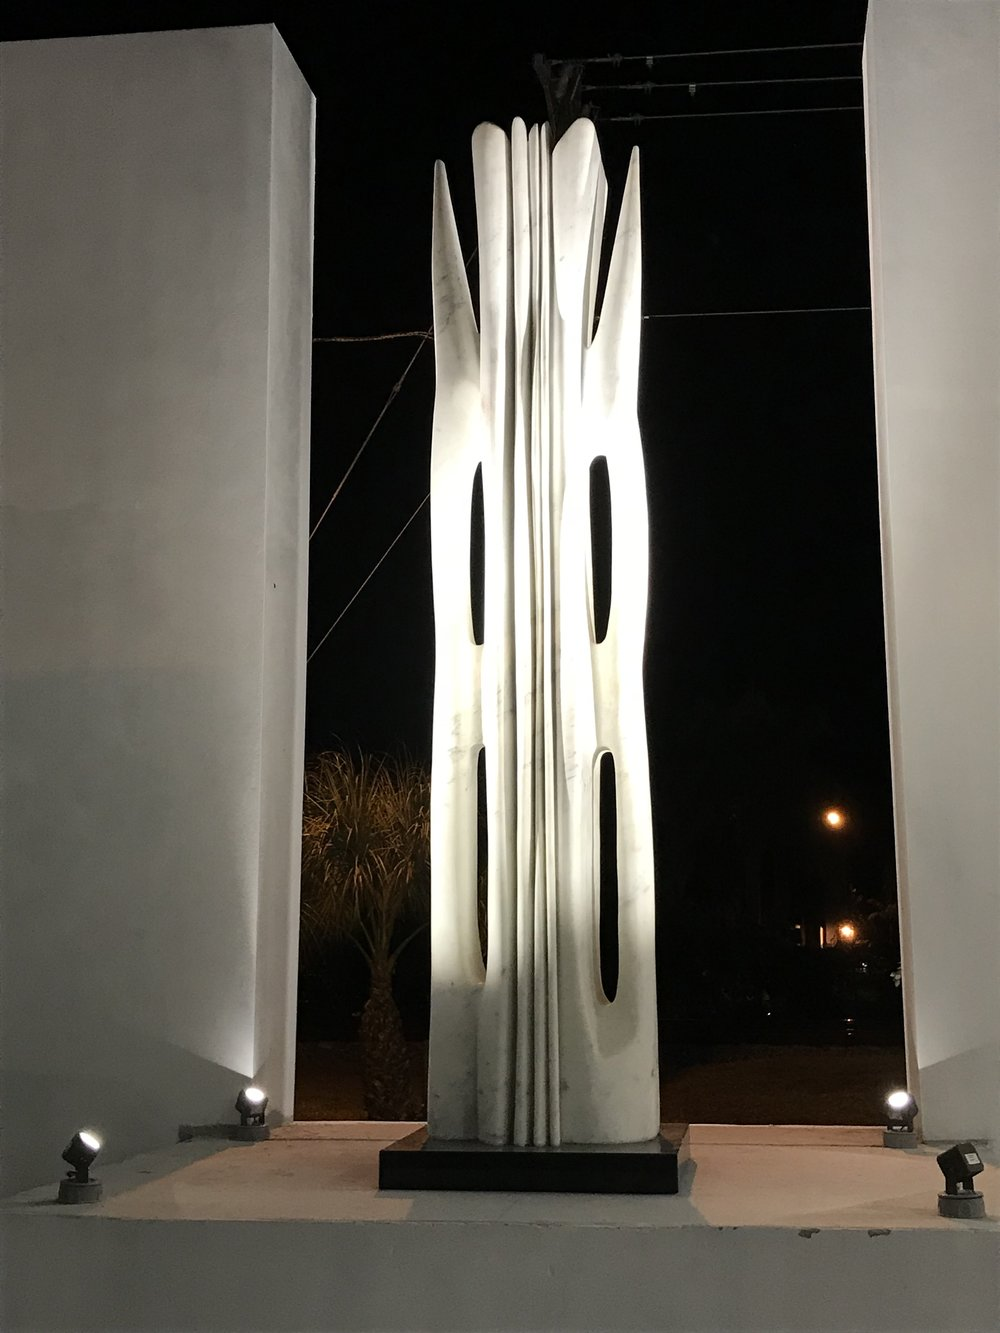 Atchugarry Art Center in North Miami. Outdoor sculpture illuminated by Targetti's new DART Medium spot light.